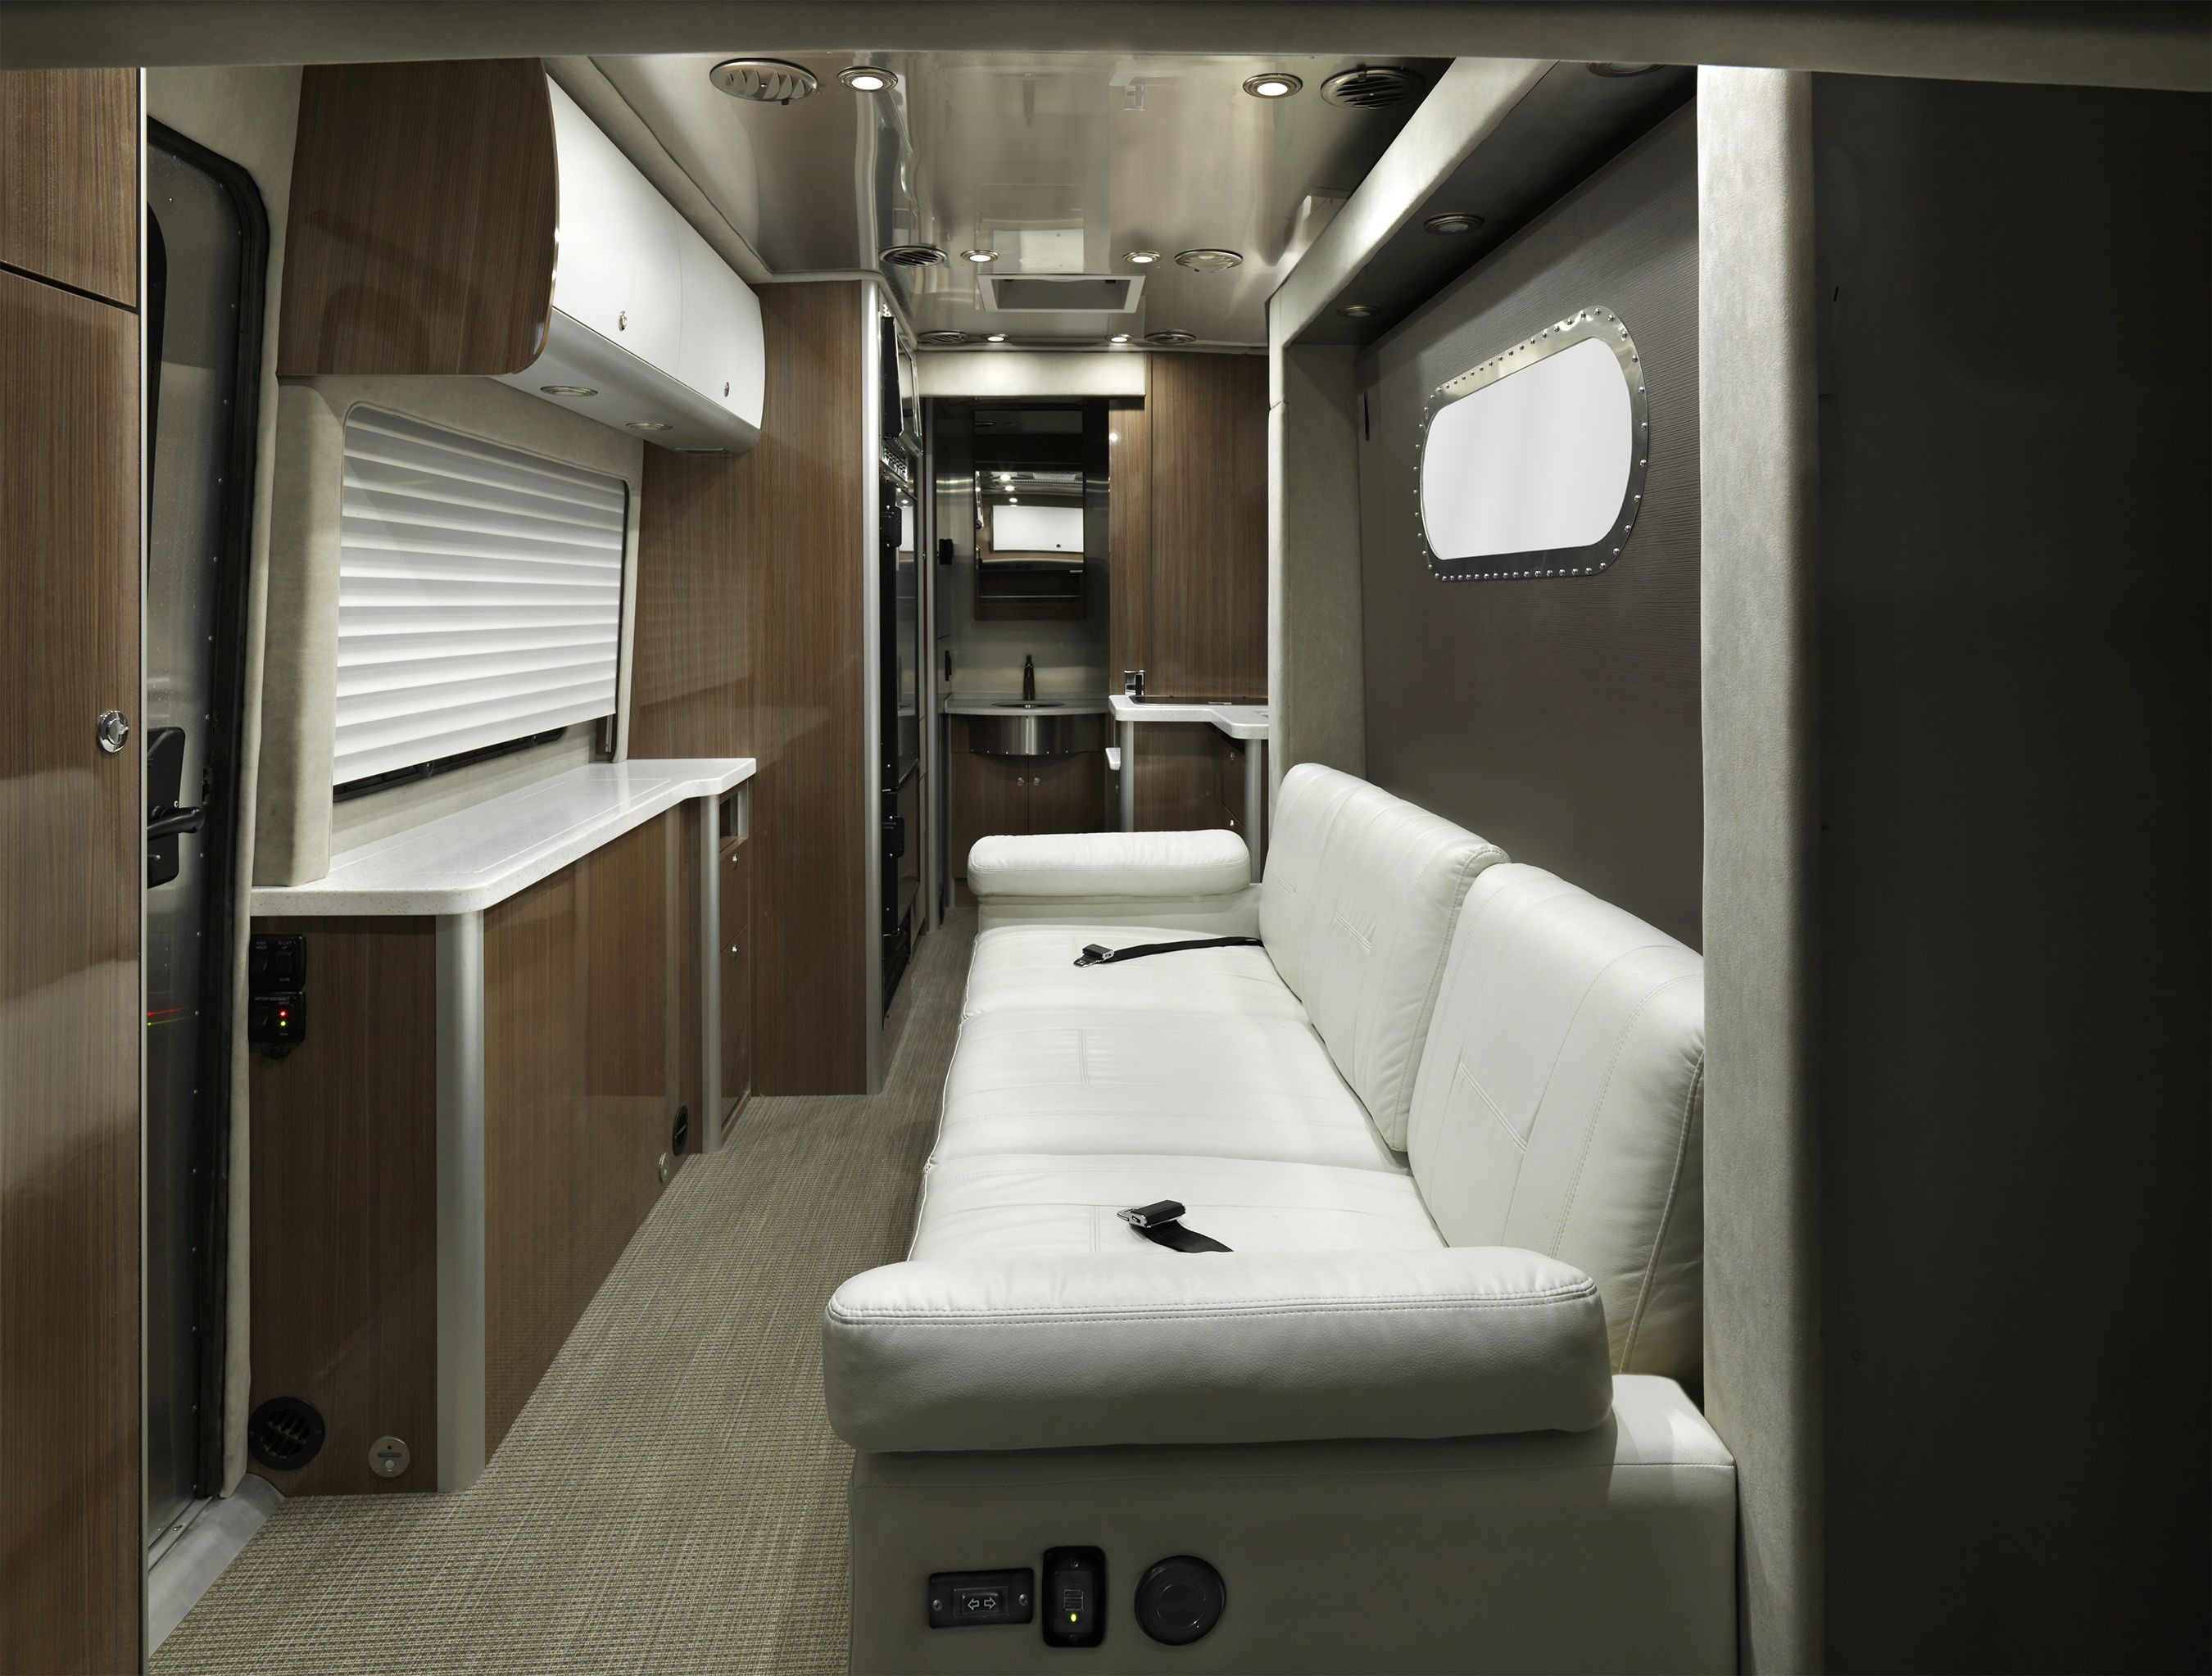 Airstream Class B >> Airstream 2018 Atlas luxury motorhome sofa. | Mercedes benz diesel, Motorhome, Camper van